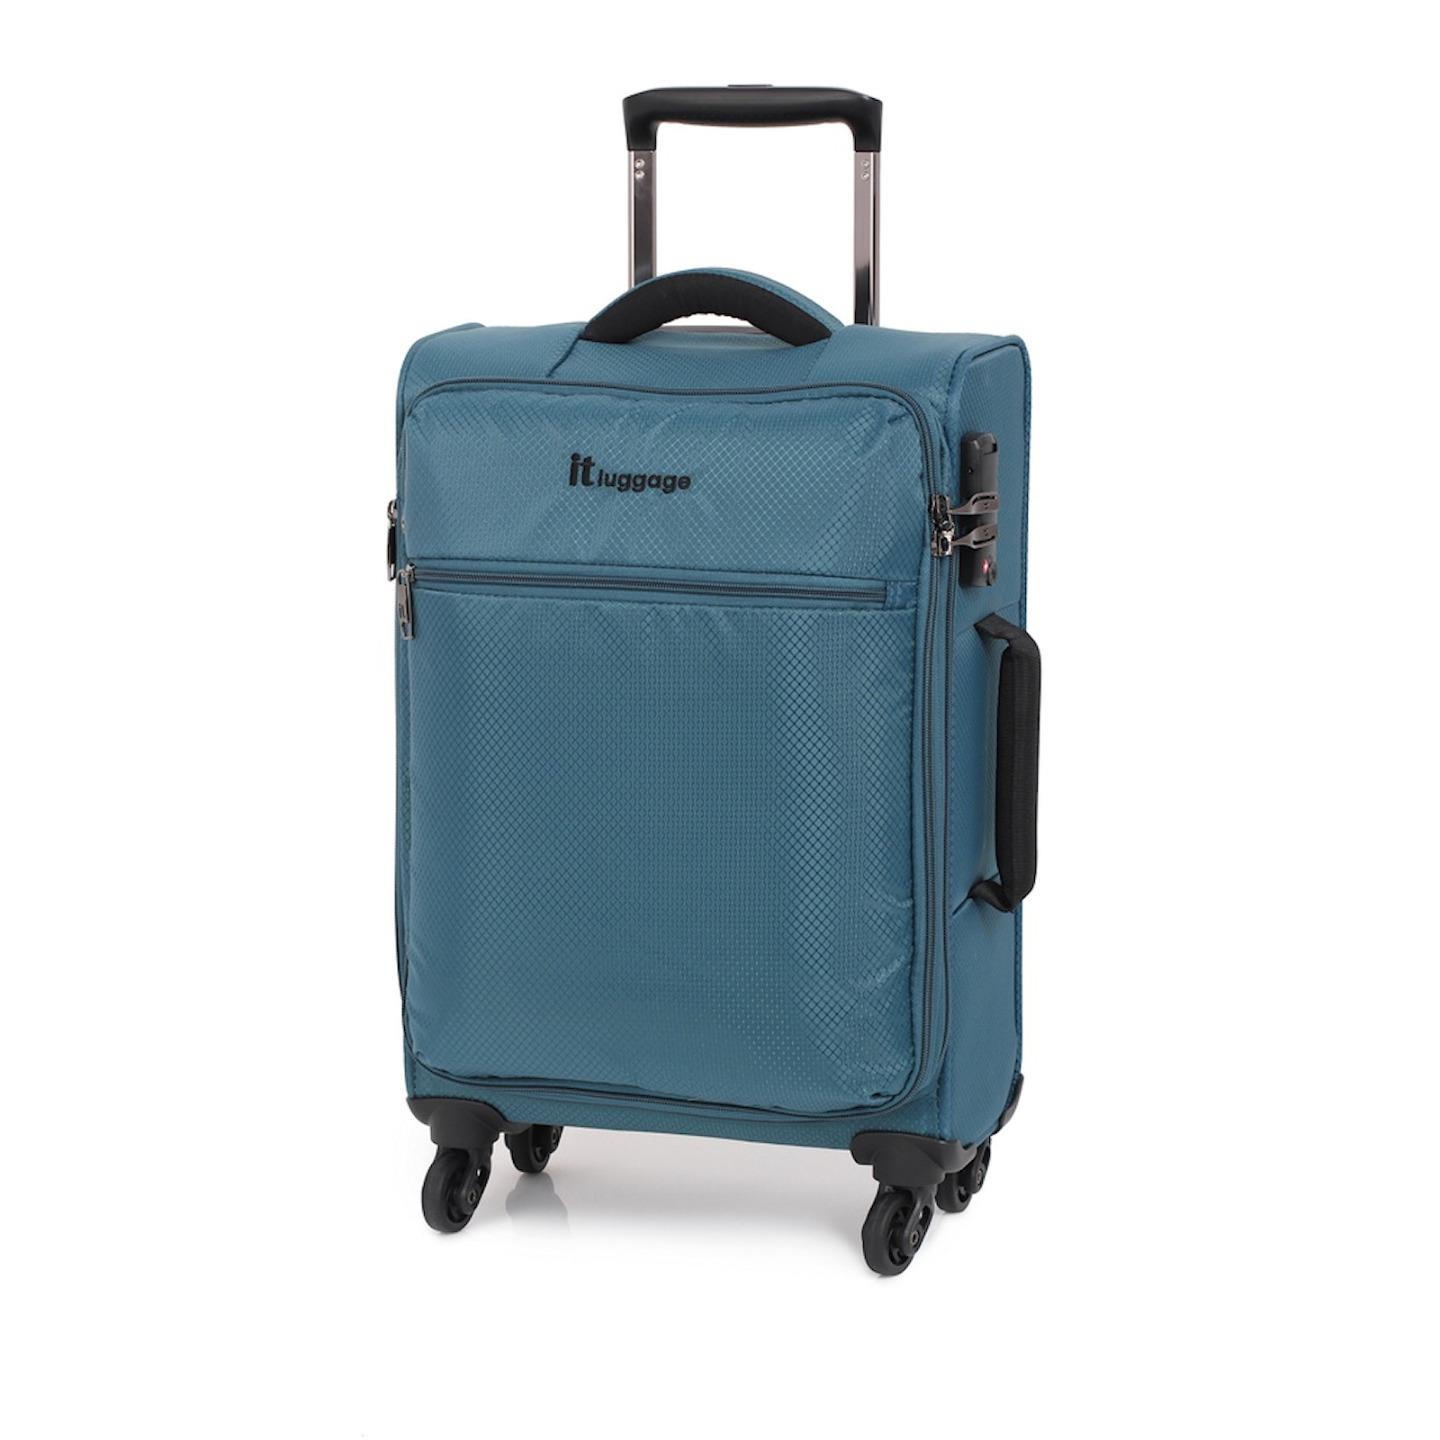 it carry on luggage the lite trolley cabin bag lightweight. Black Bedroom Furniture Sets. Home Design Ideas